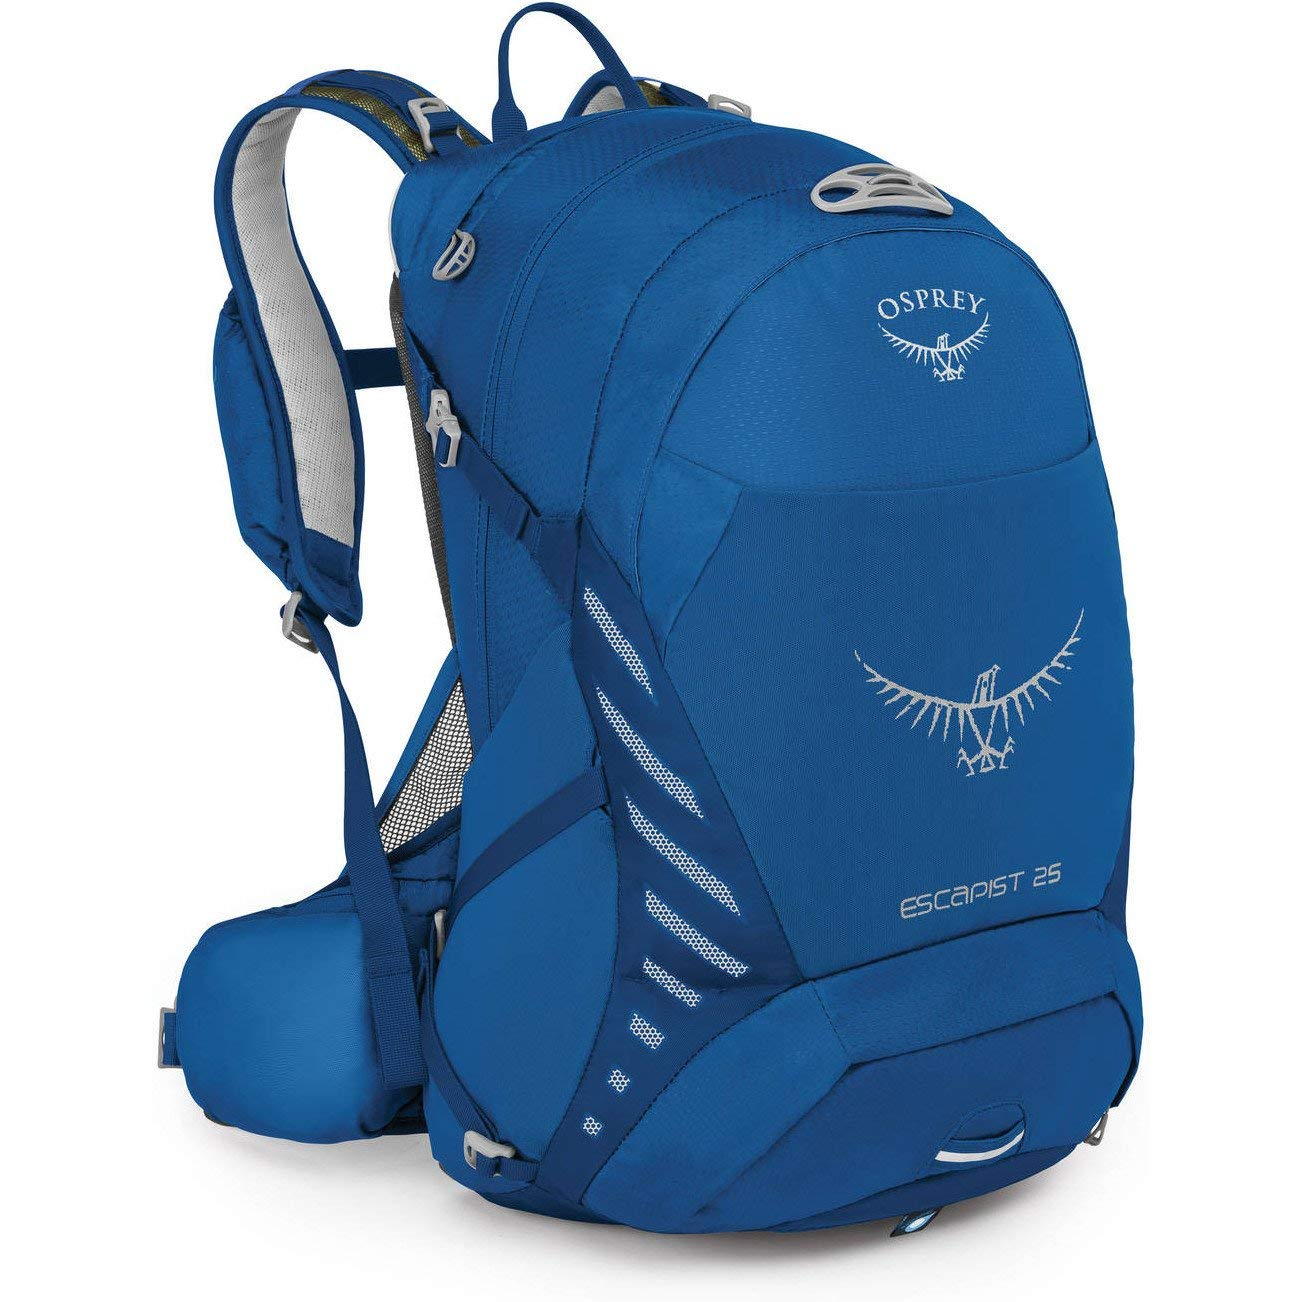 Osprey Packs Escapist 25 Daypacks, Indigo Blue, Small/Medium